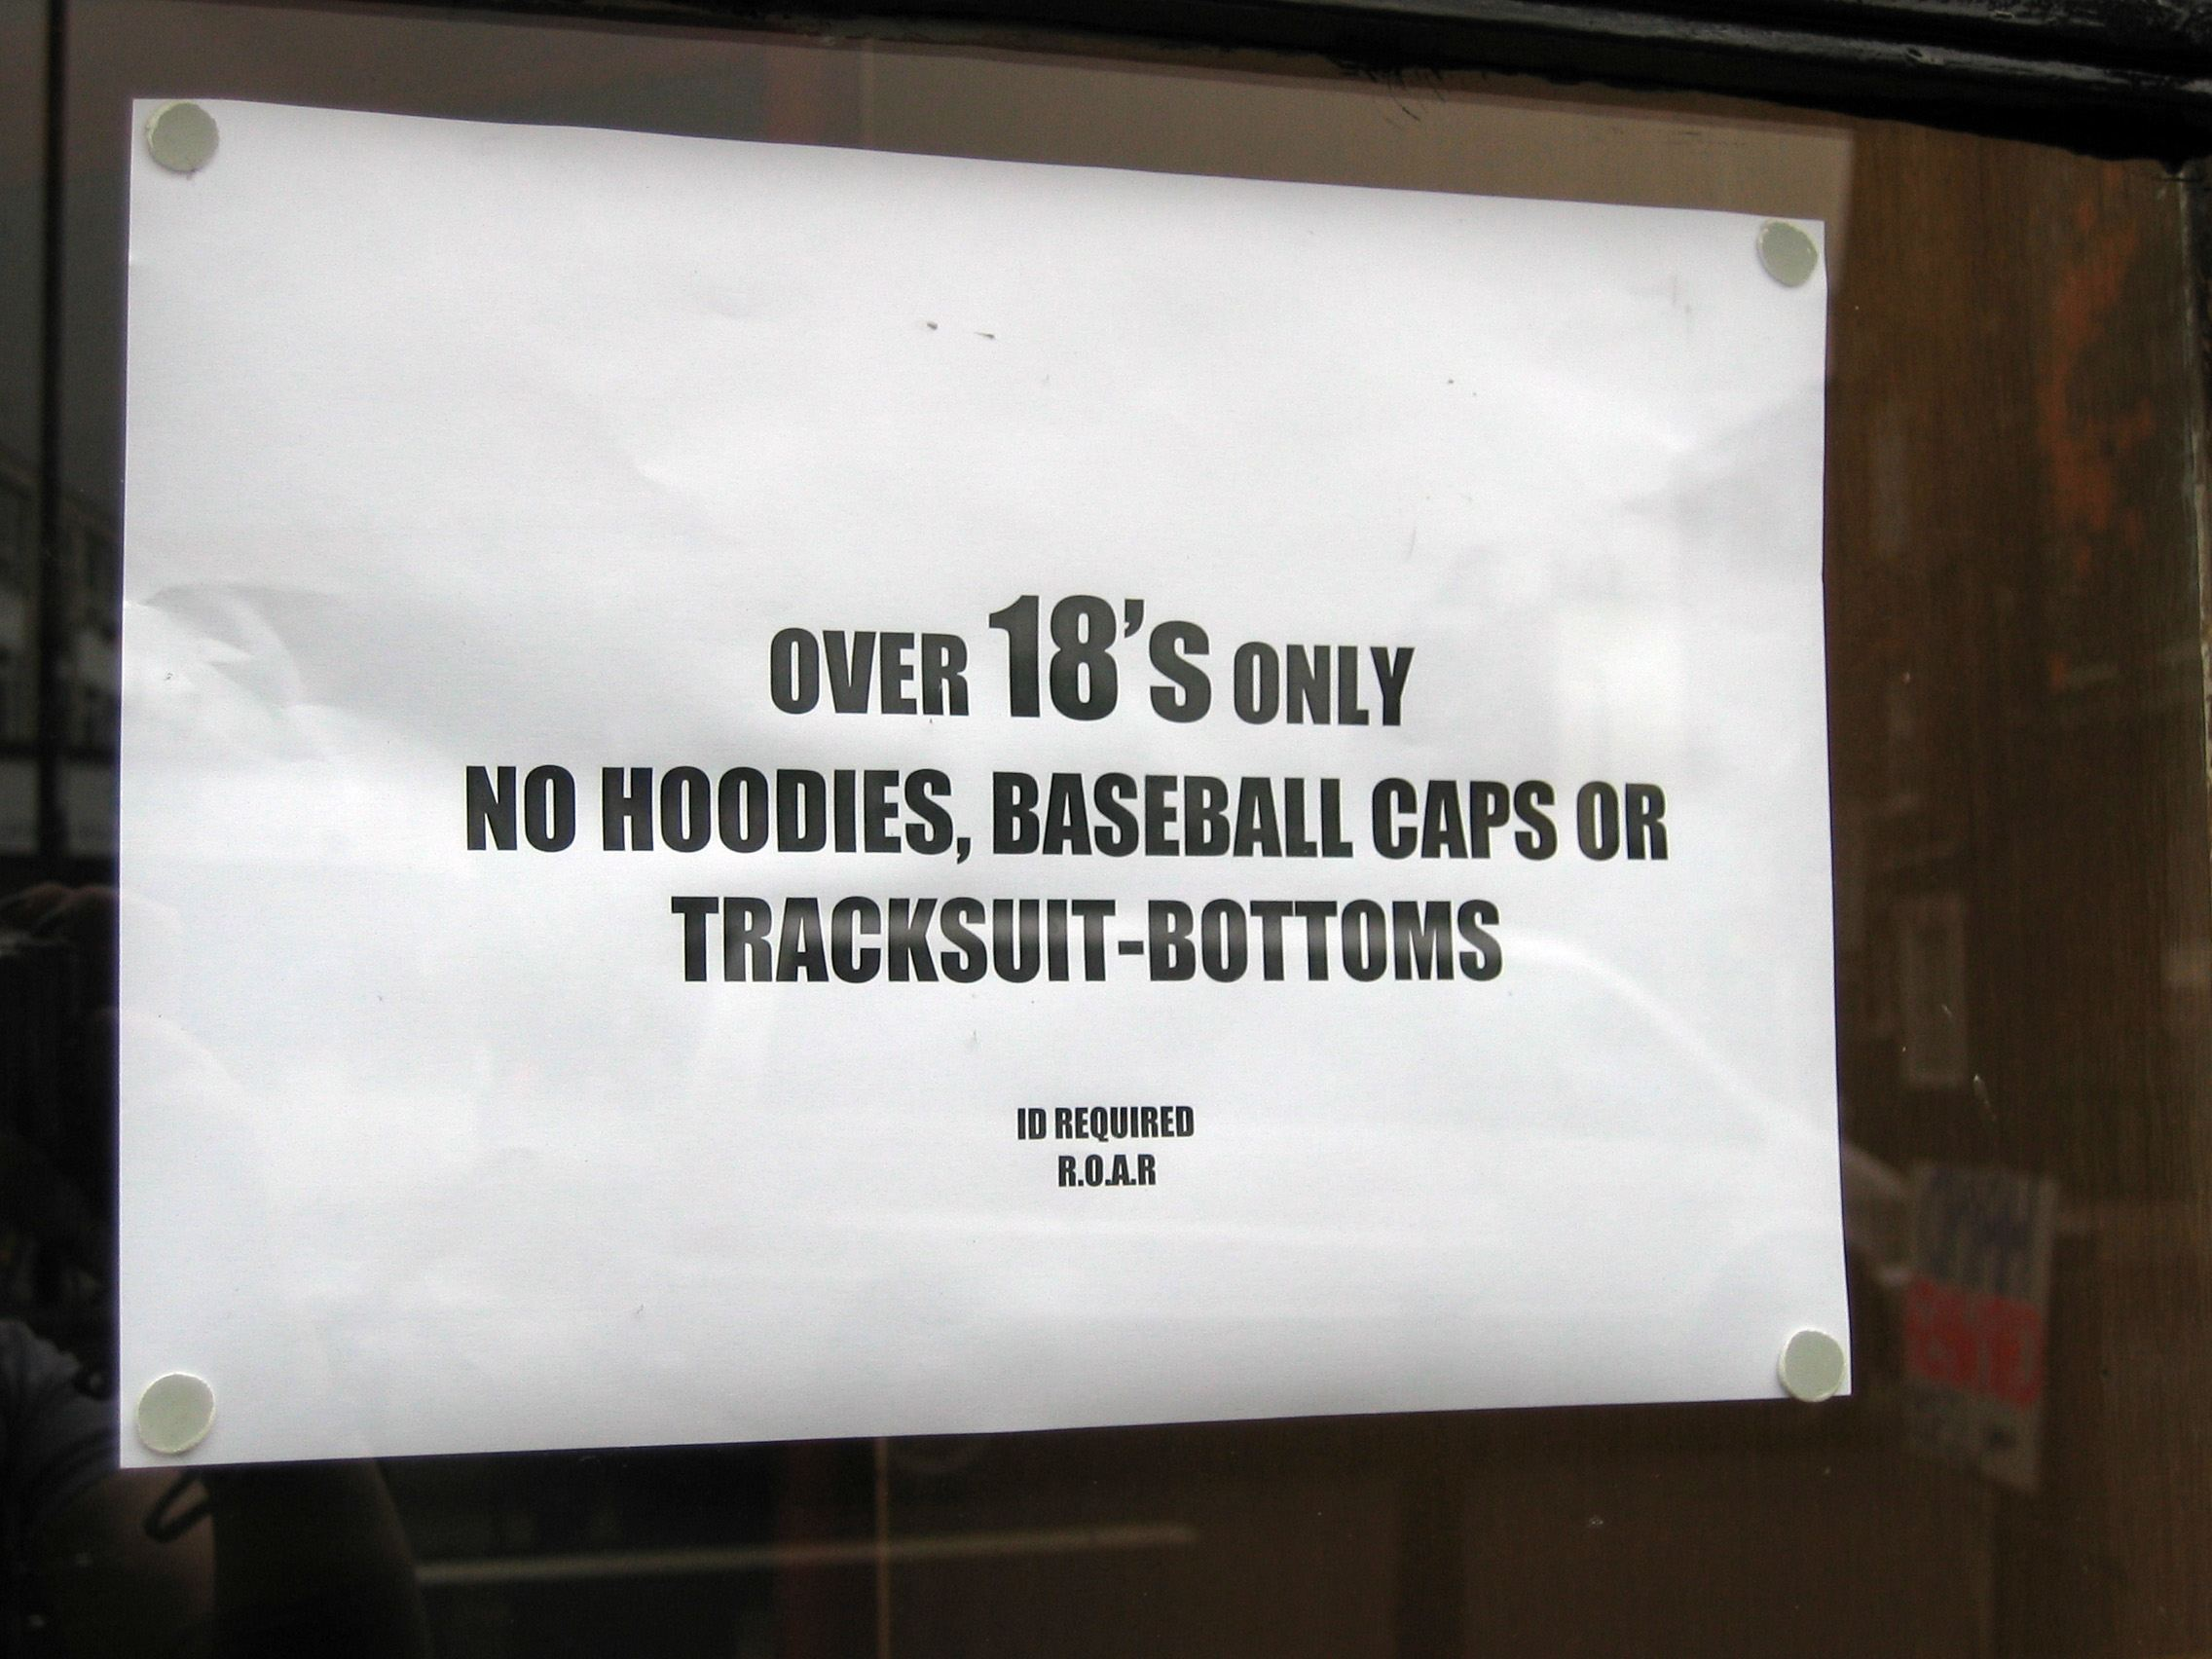 No hoodies sign